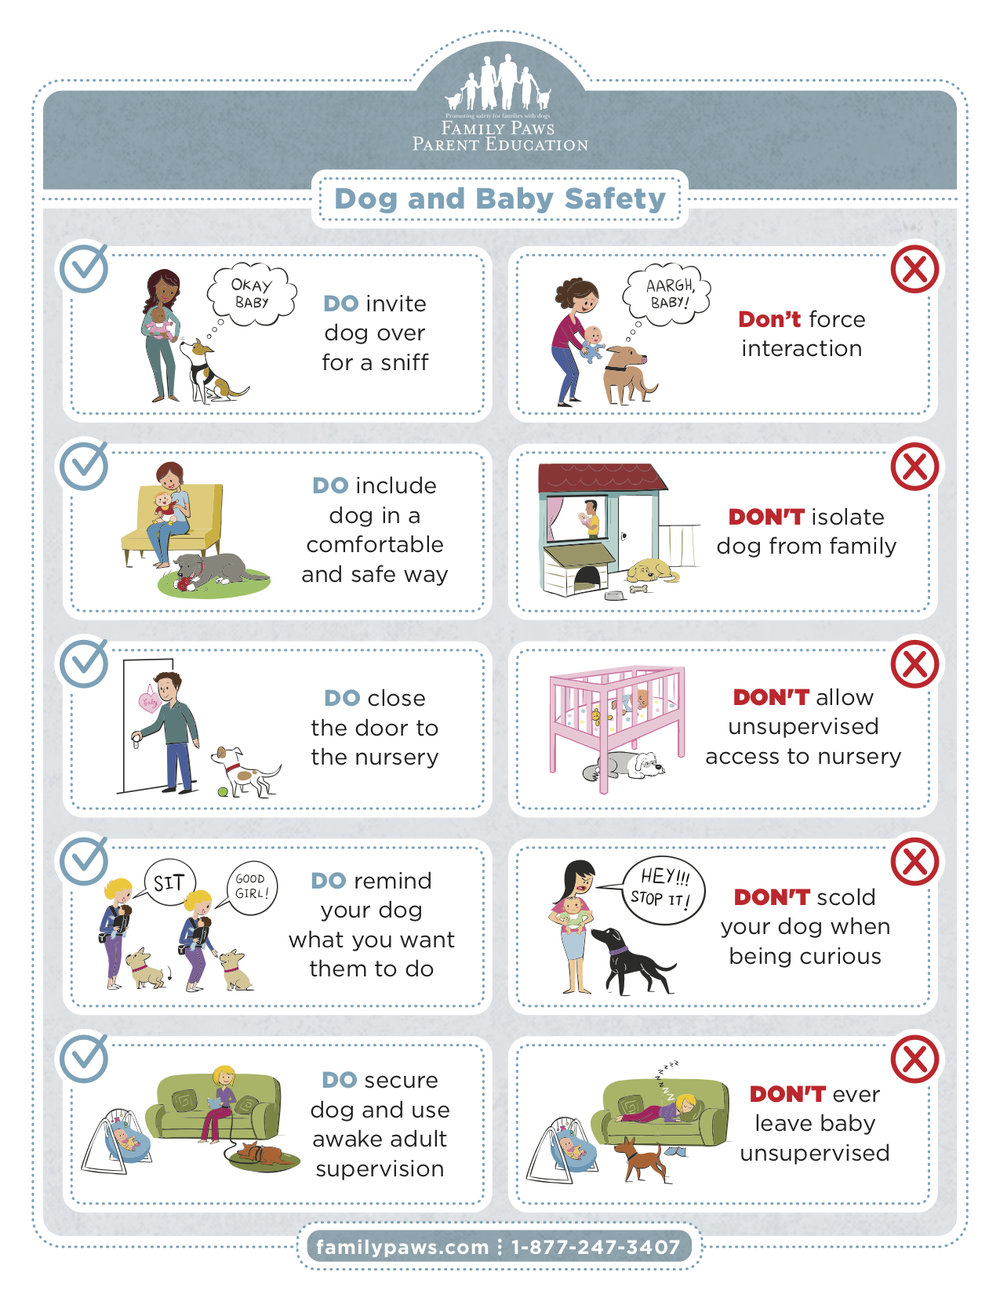 Family Paws Dog and Baby Safety.jpg